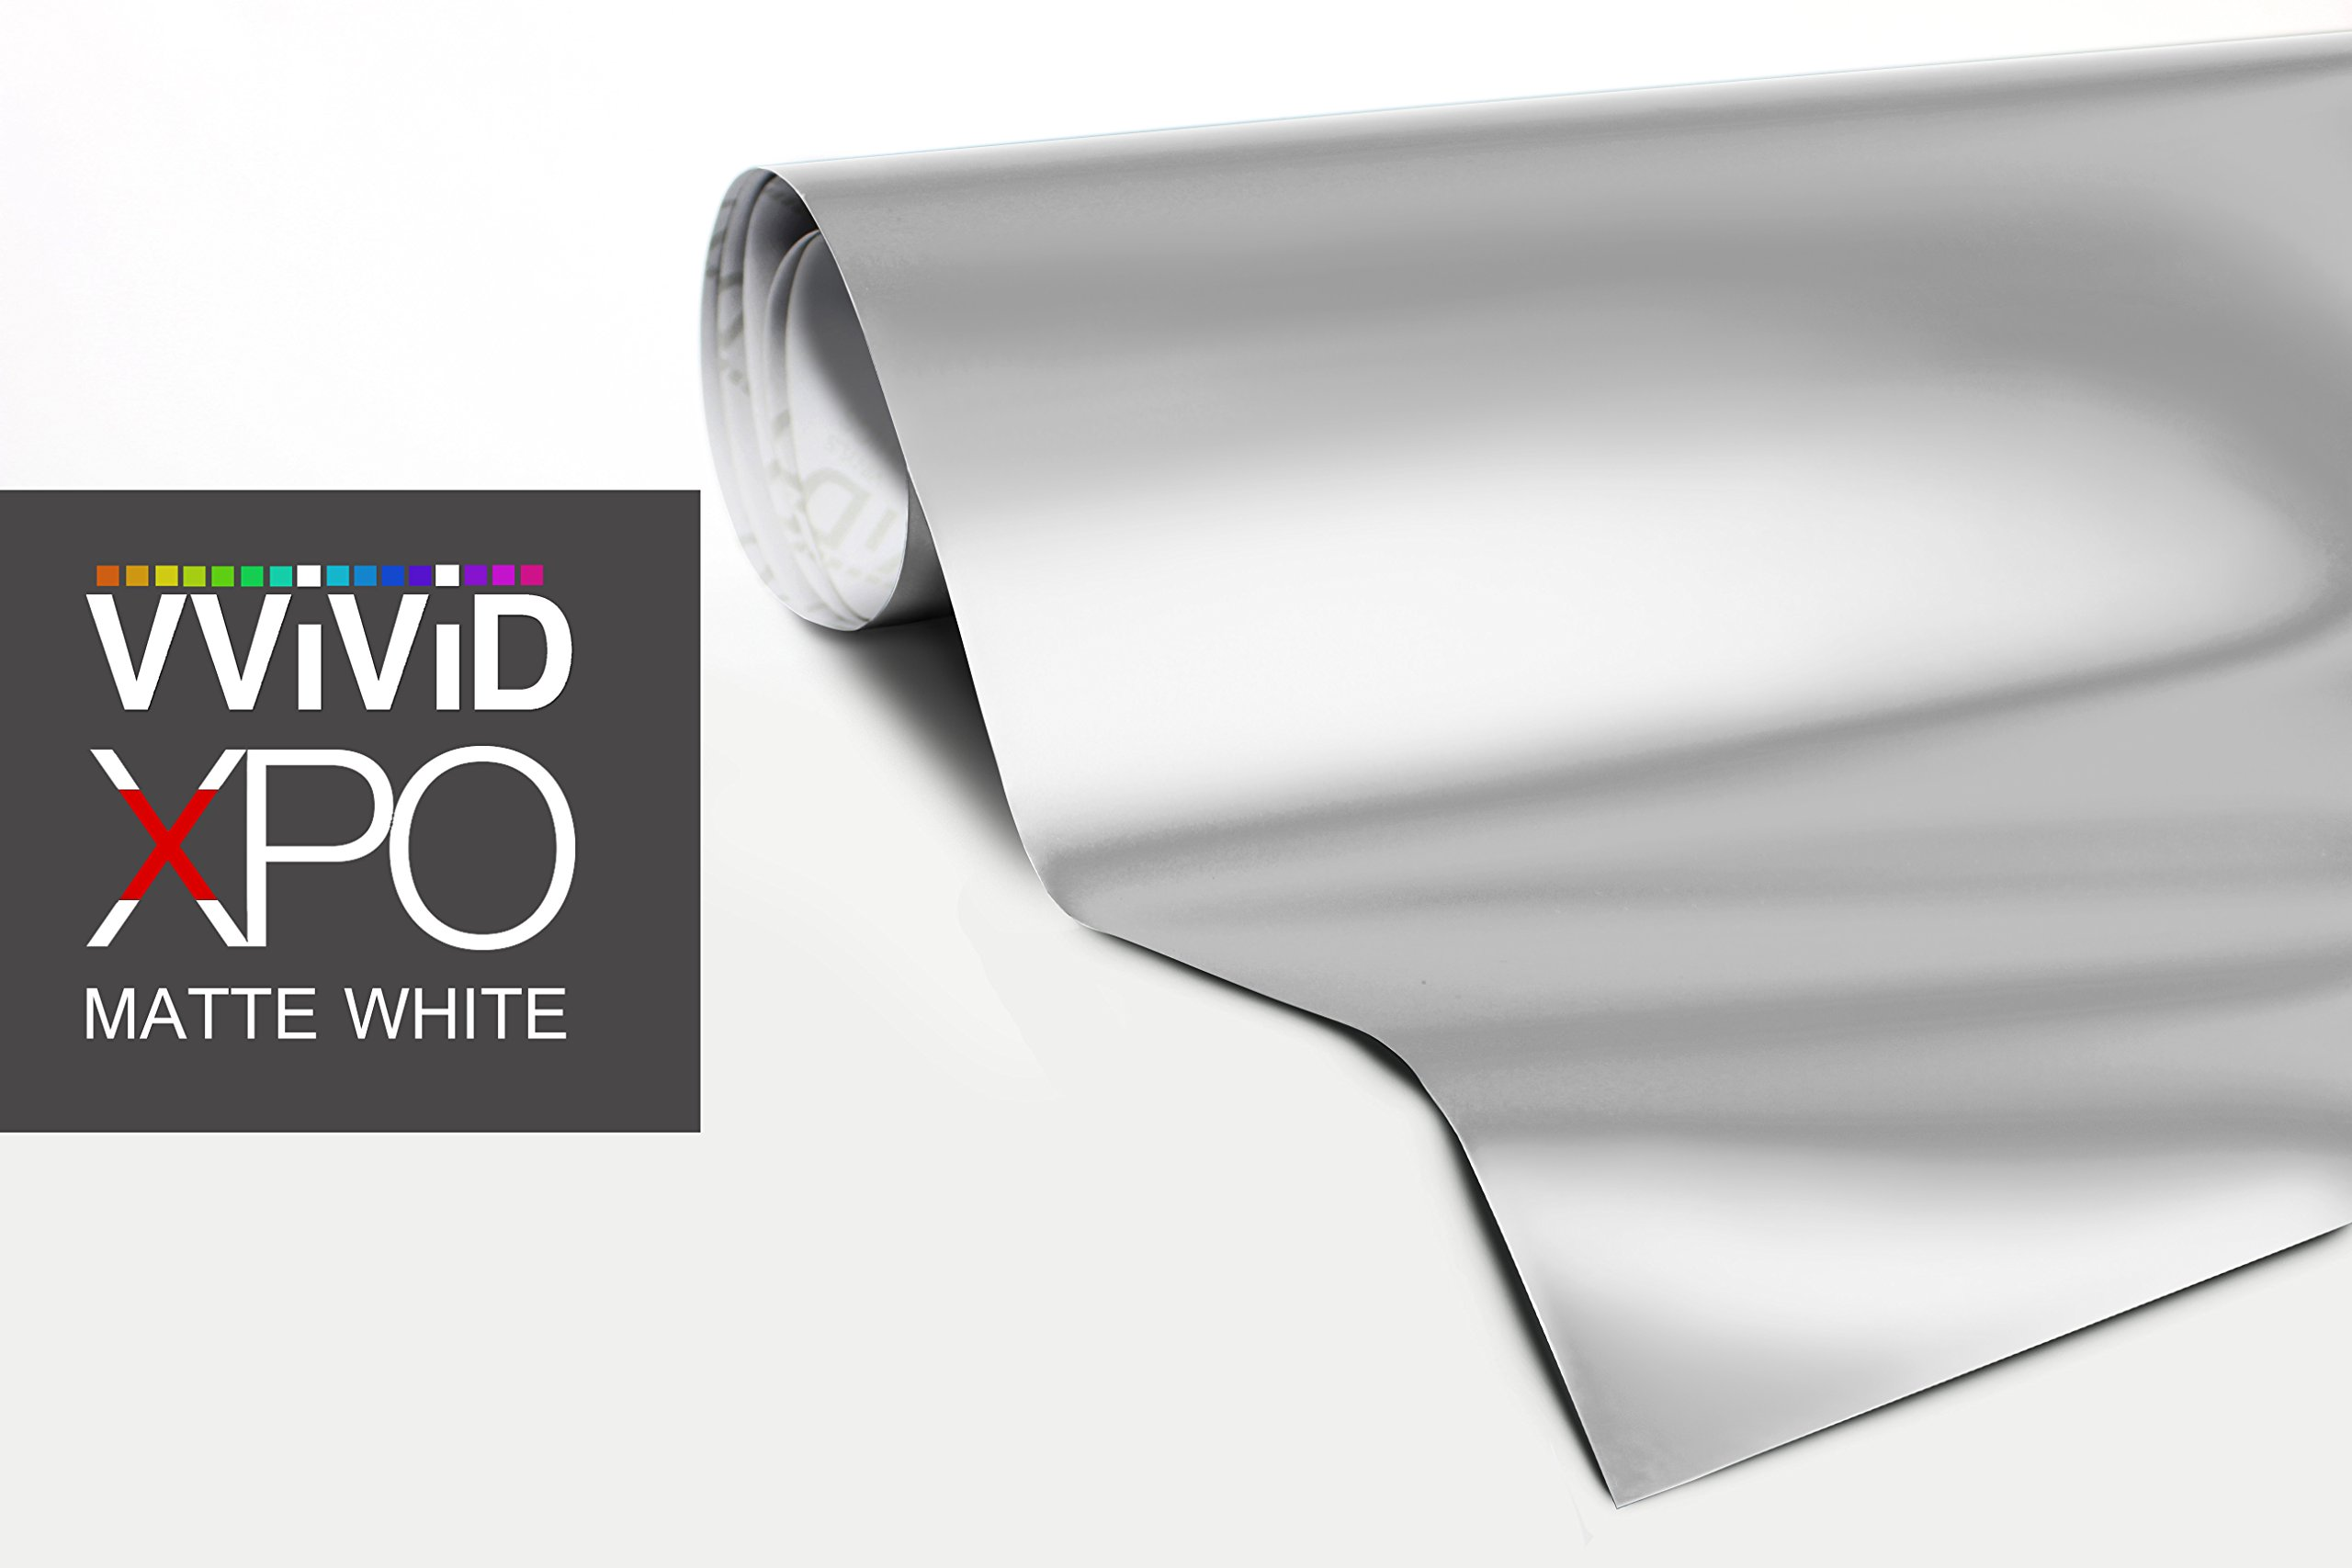 Matte White Car Wrap Vinyl Roll with Air Release 3MIL-VViViD8 (50ft x 5ft (Full Car Wrap Kit))